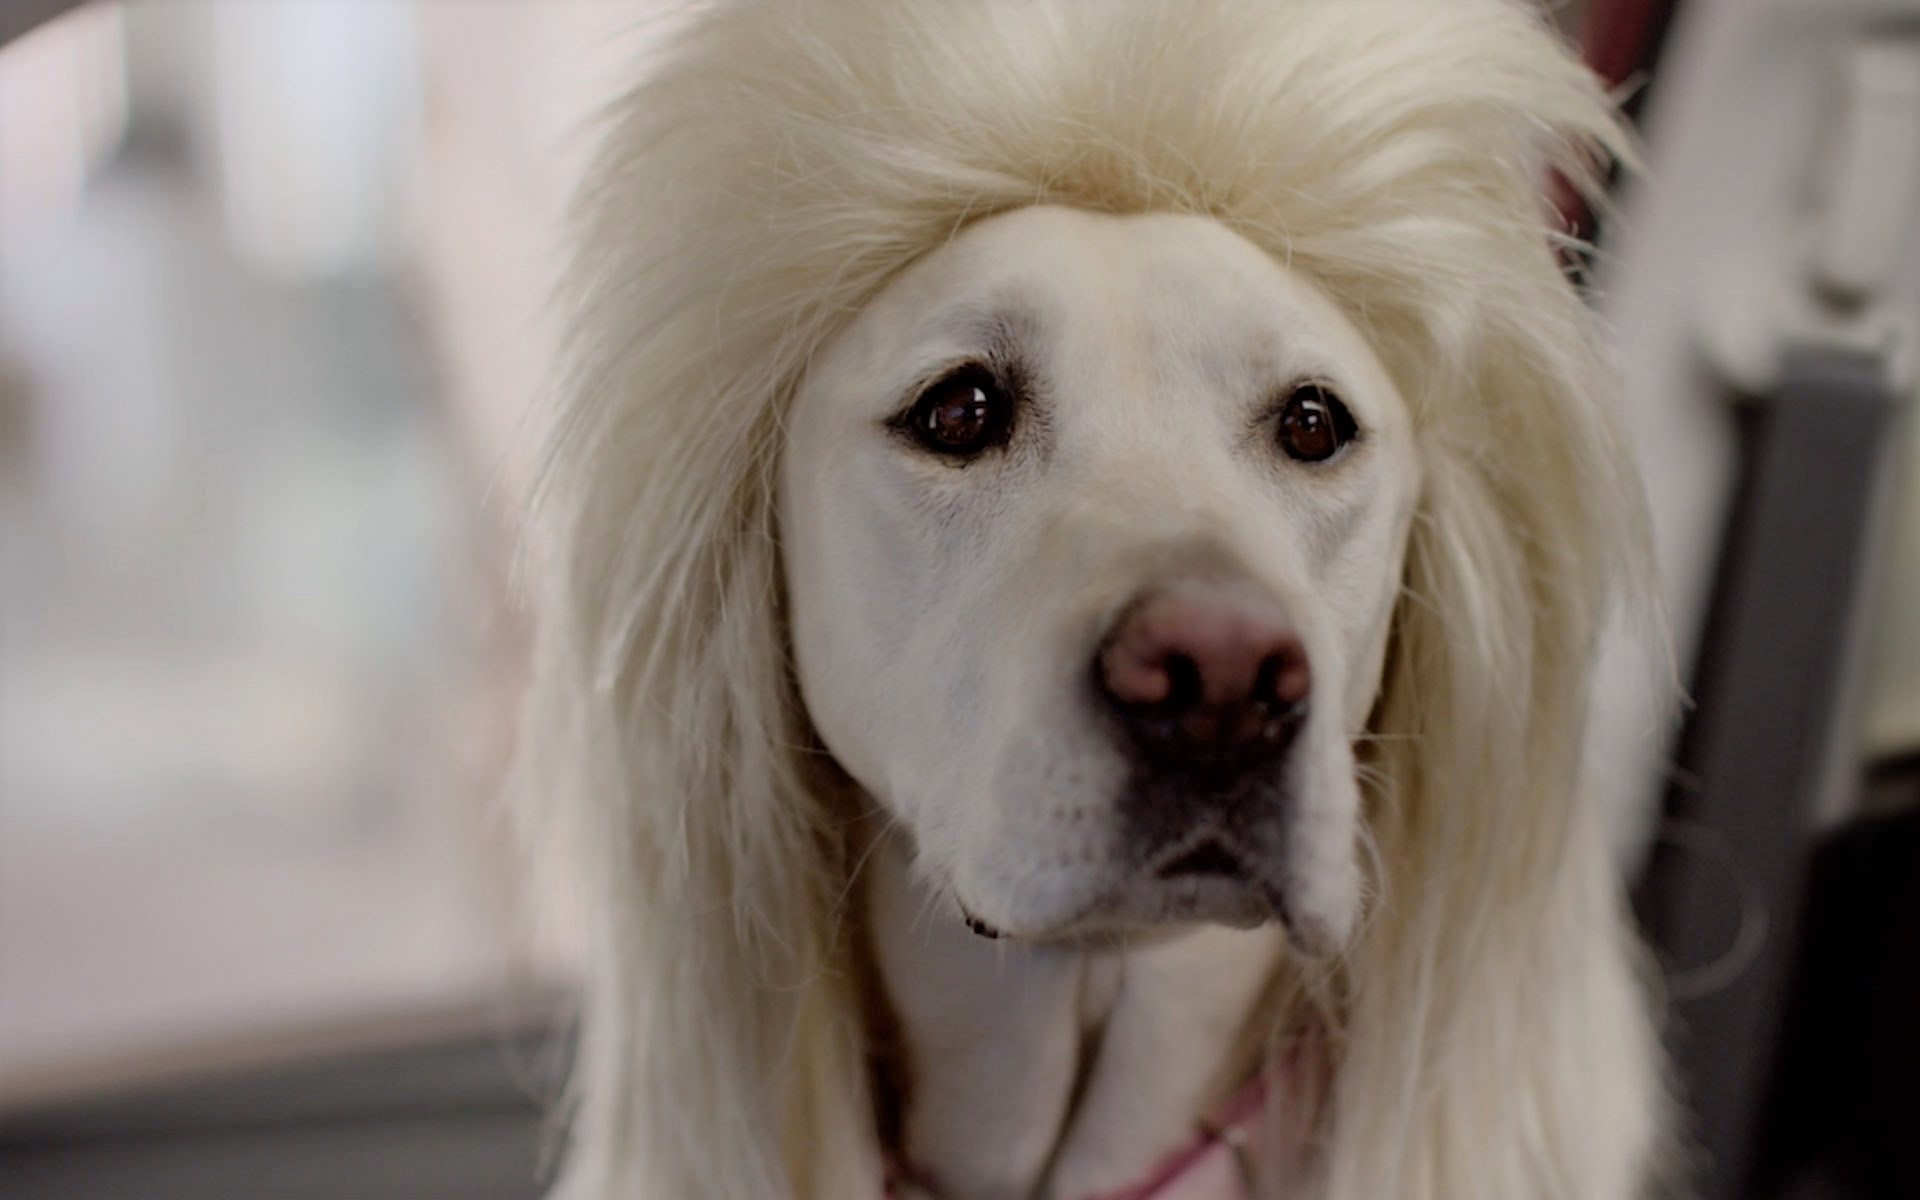 video Subaru commercial bad hair day